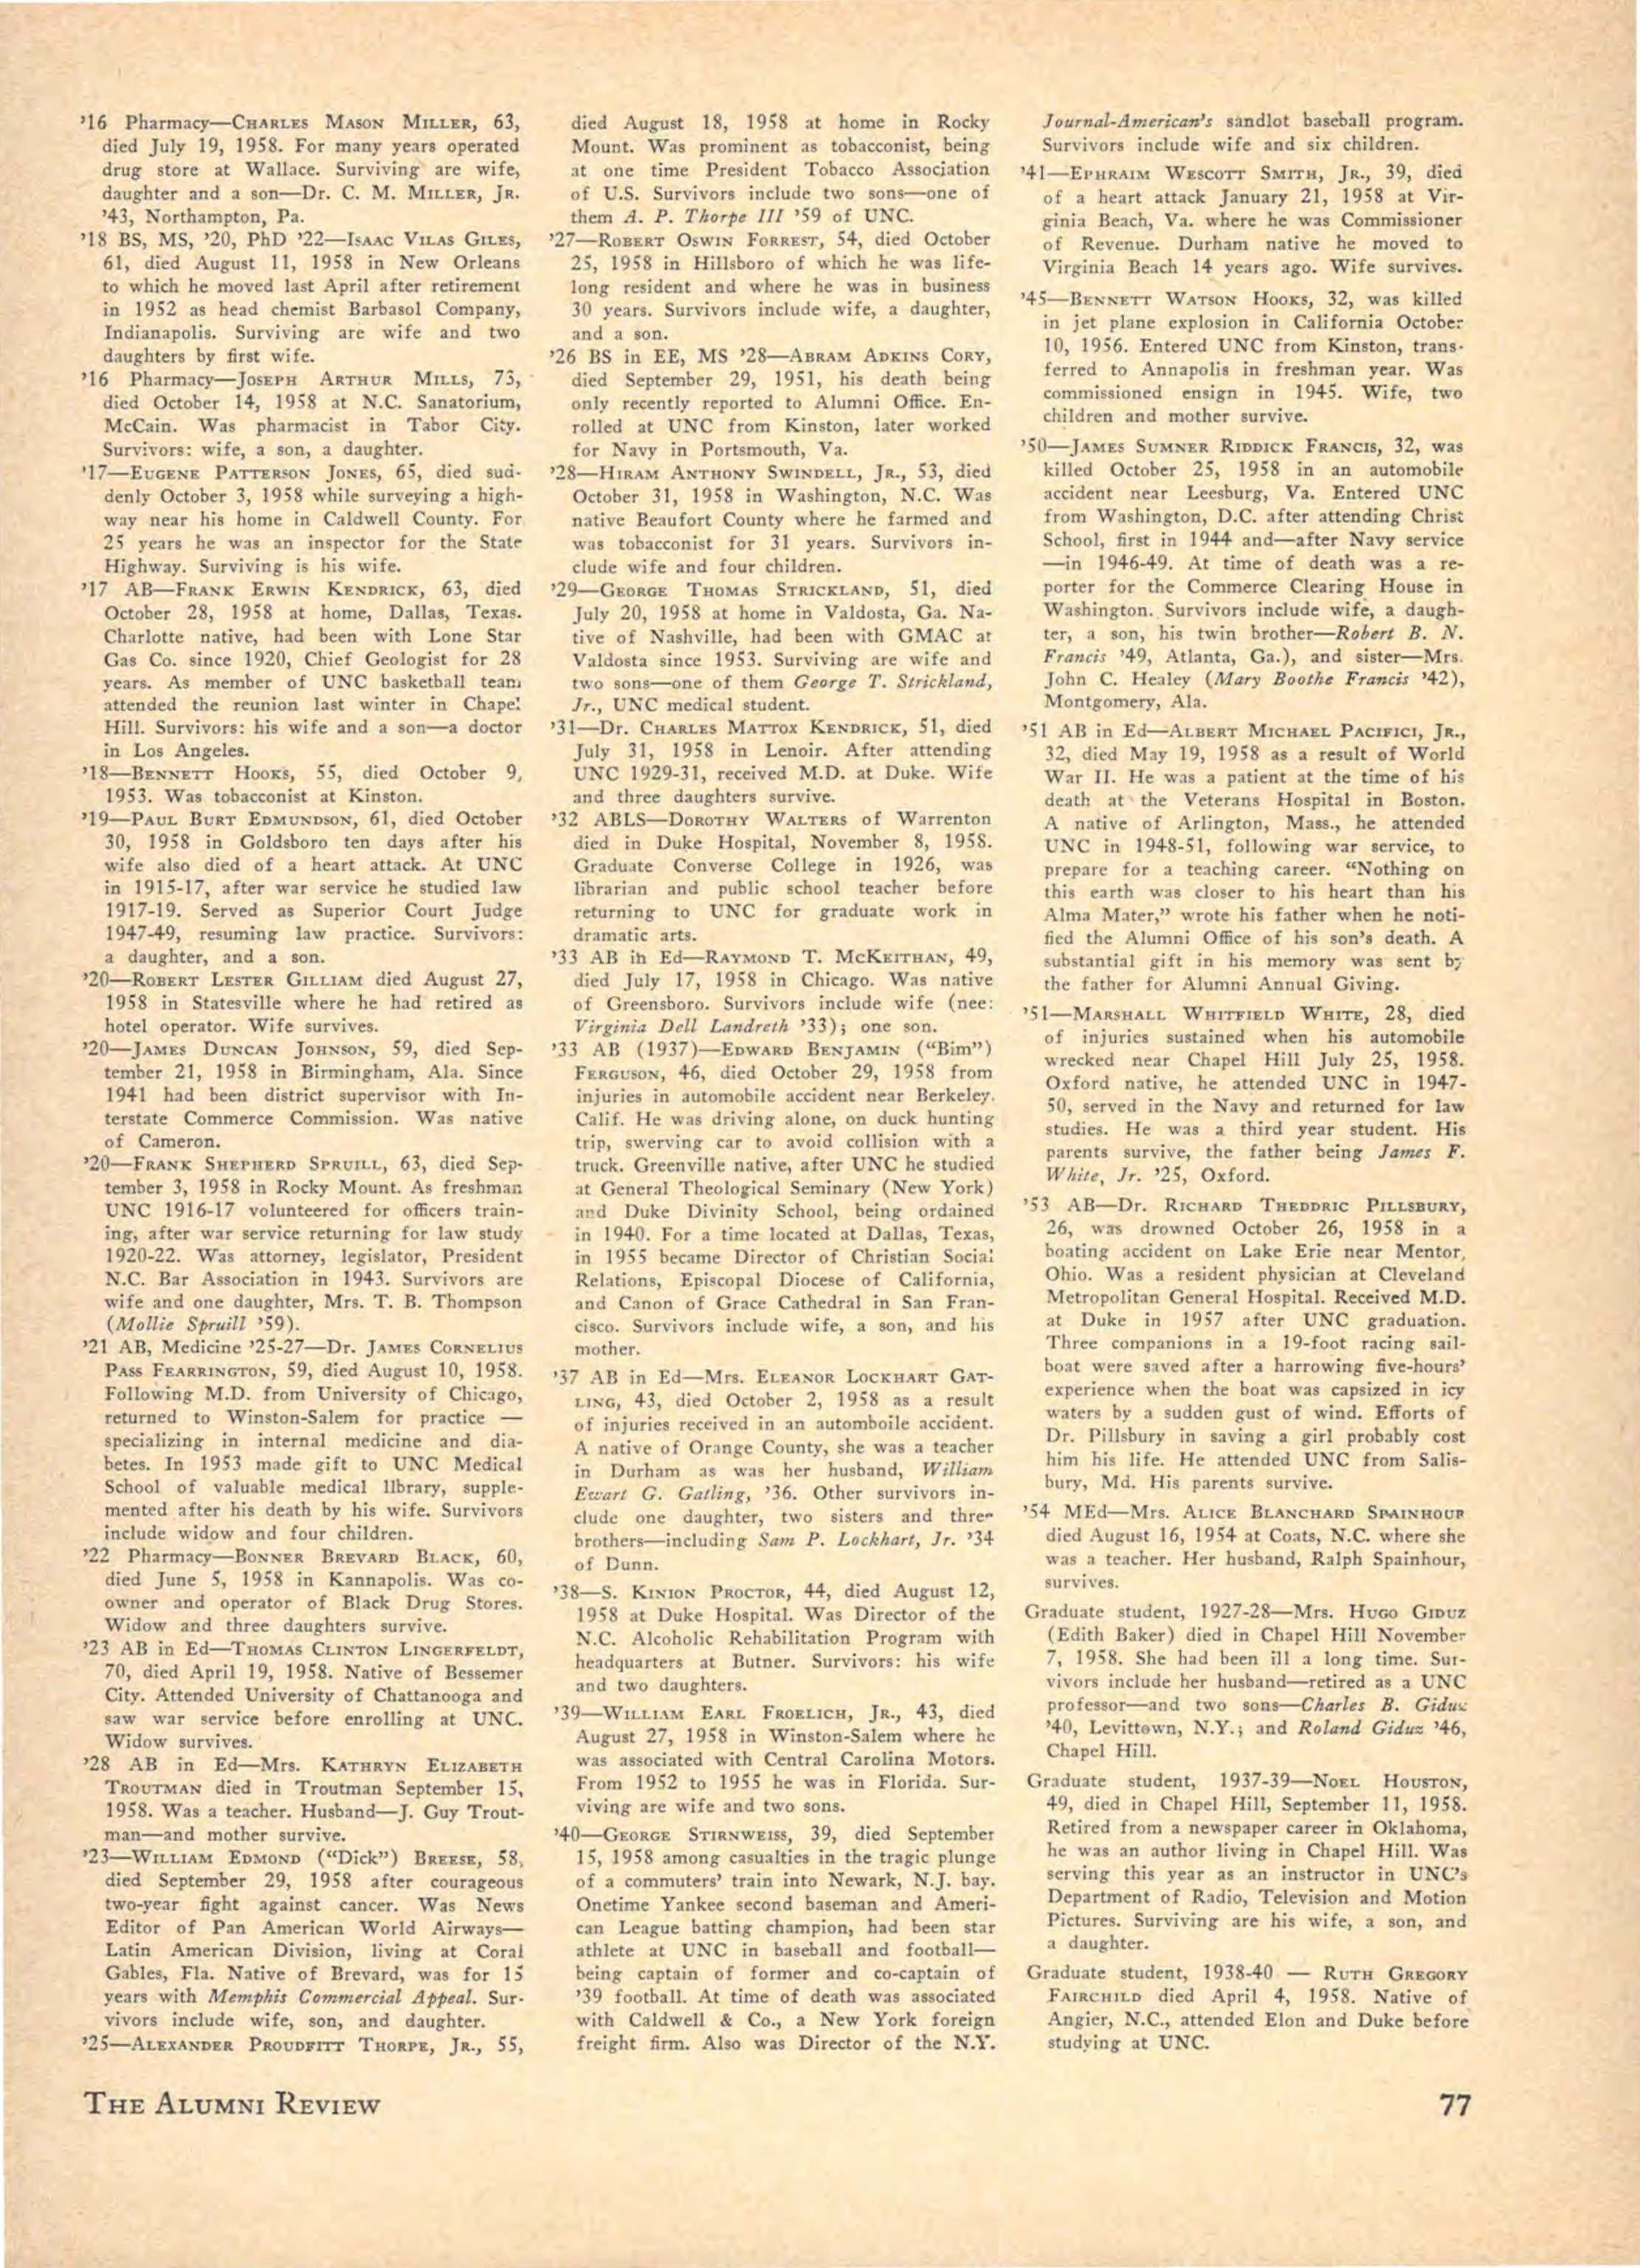 Carolina Alumni Review - Fall 1958 - page 78